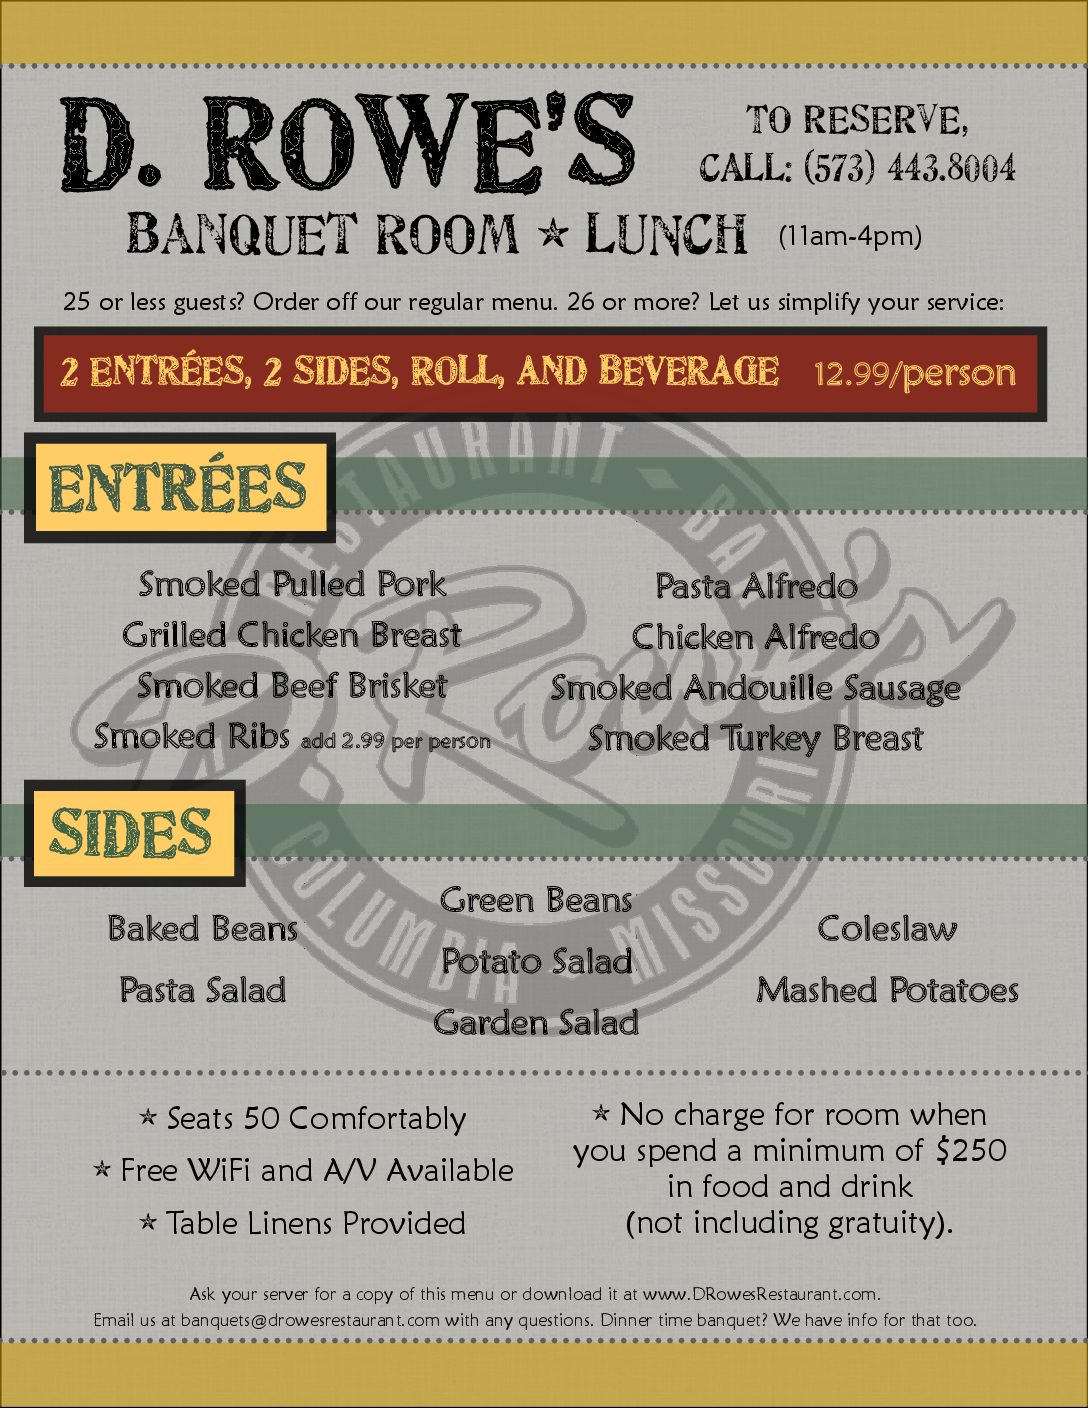 Lunch Banquet menu